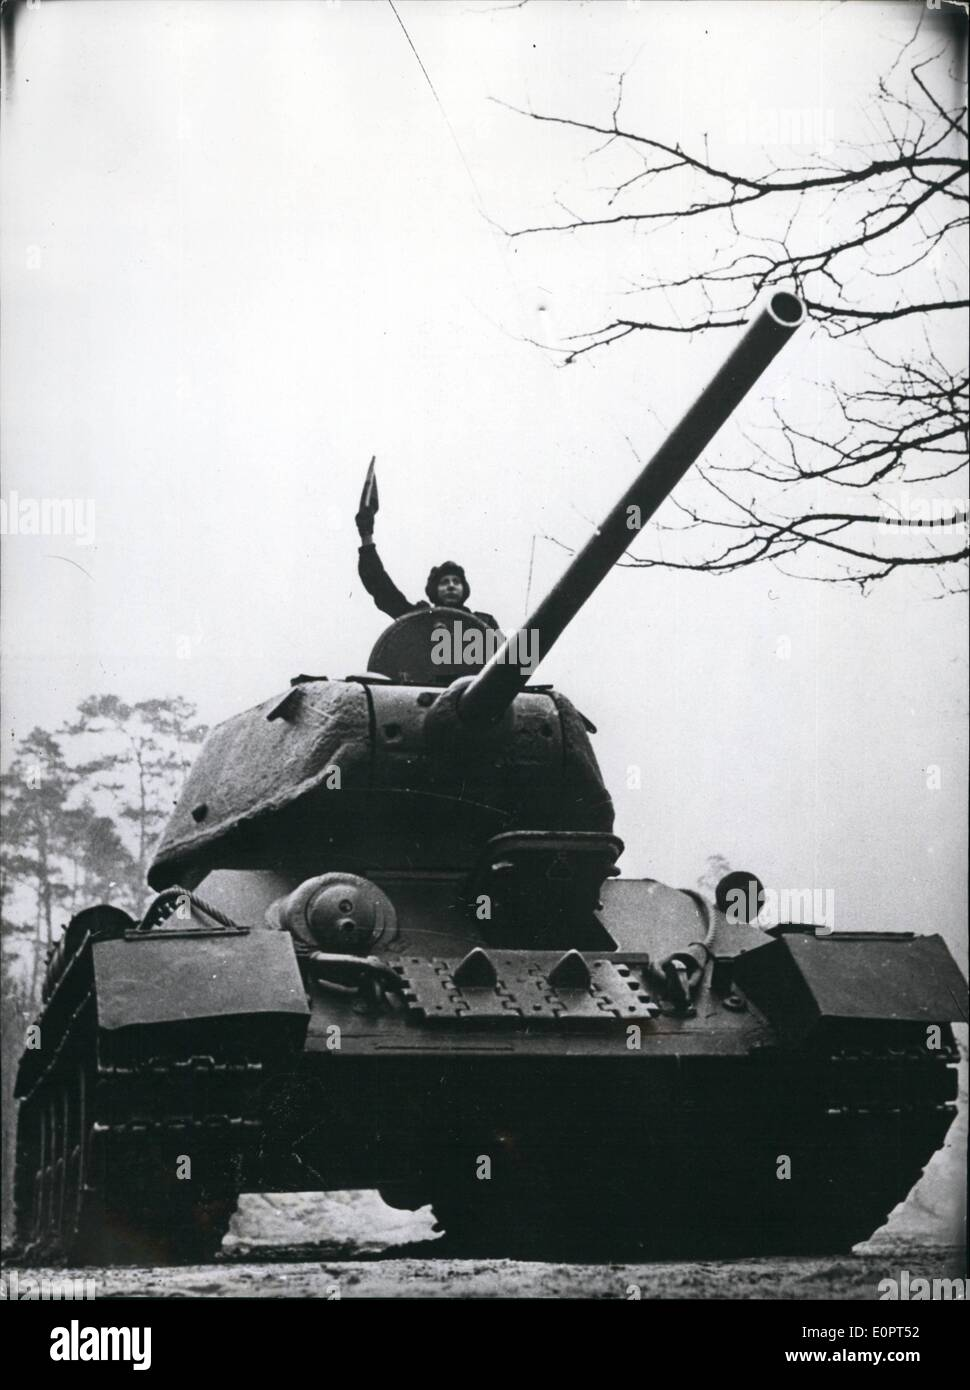 Feb. 02, 1957 - Eastgerman army: First pictures of the eastgerman peoples - army manoeuvre. Photo shows: eastgerman tank (no technical details of tank were given) - Stock Image